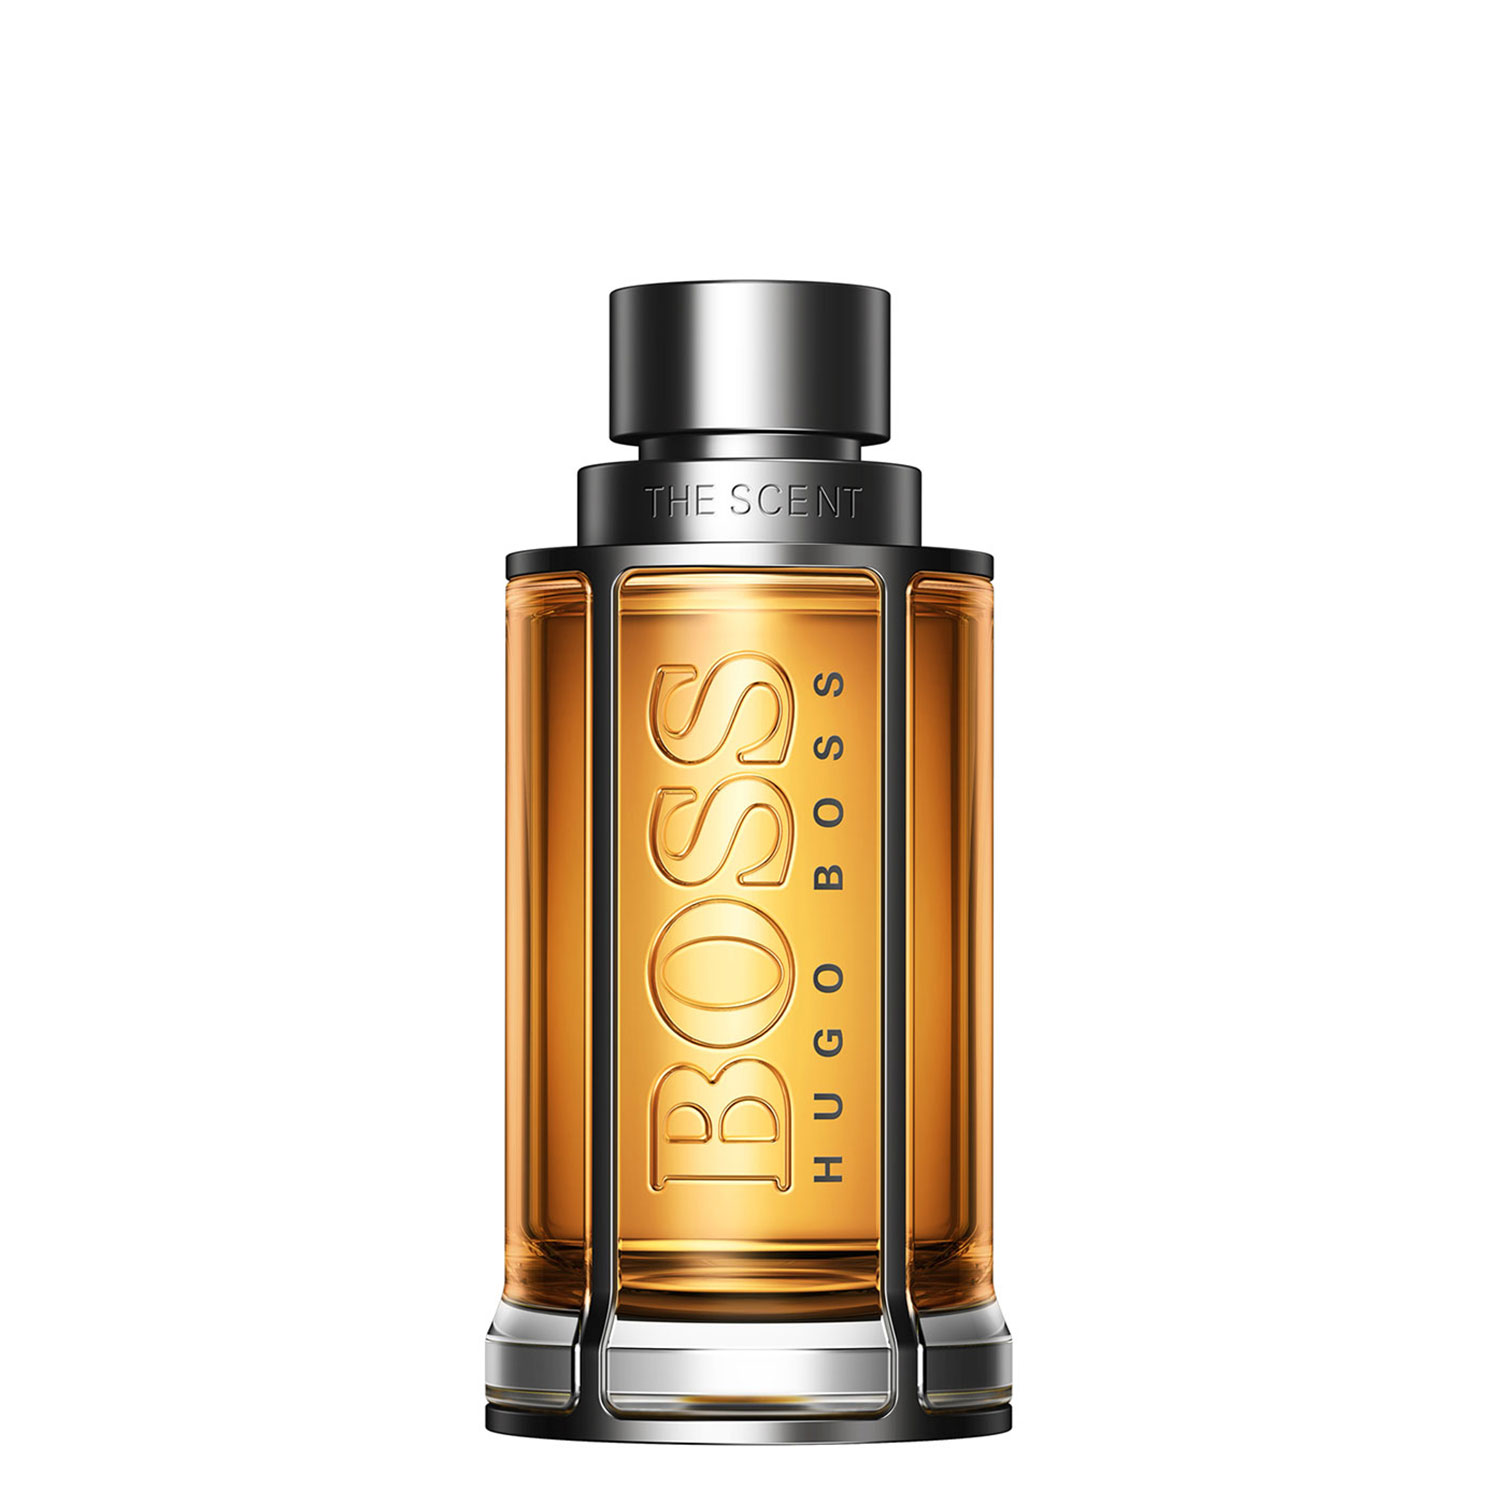 Boss The Scent - Eau de Toilette